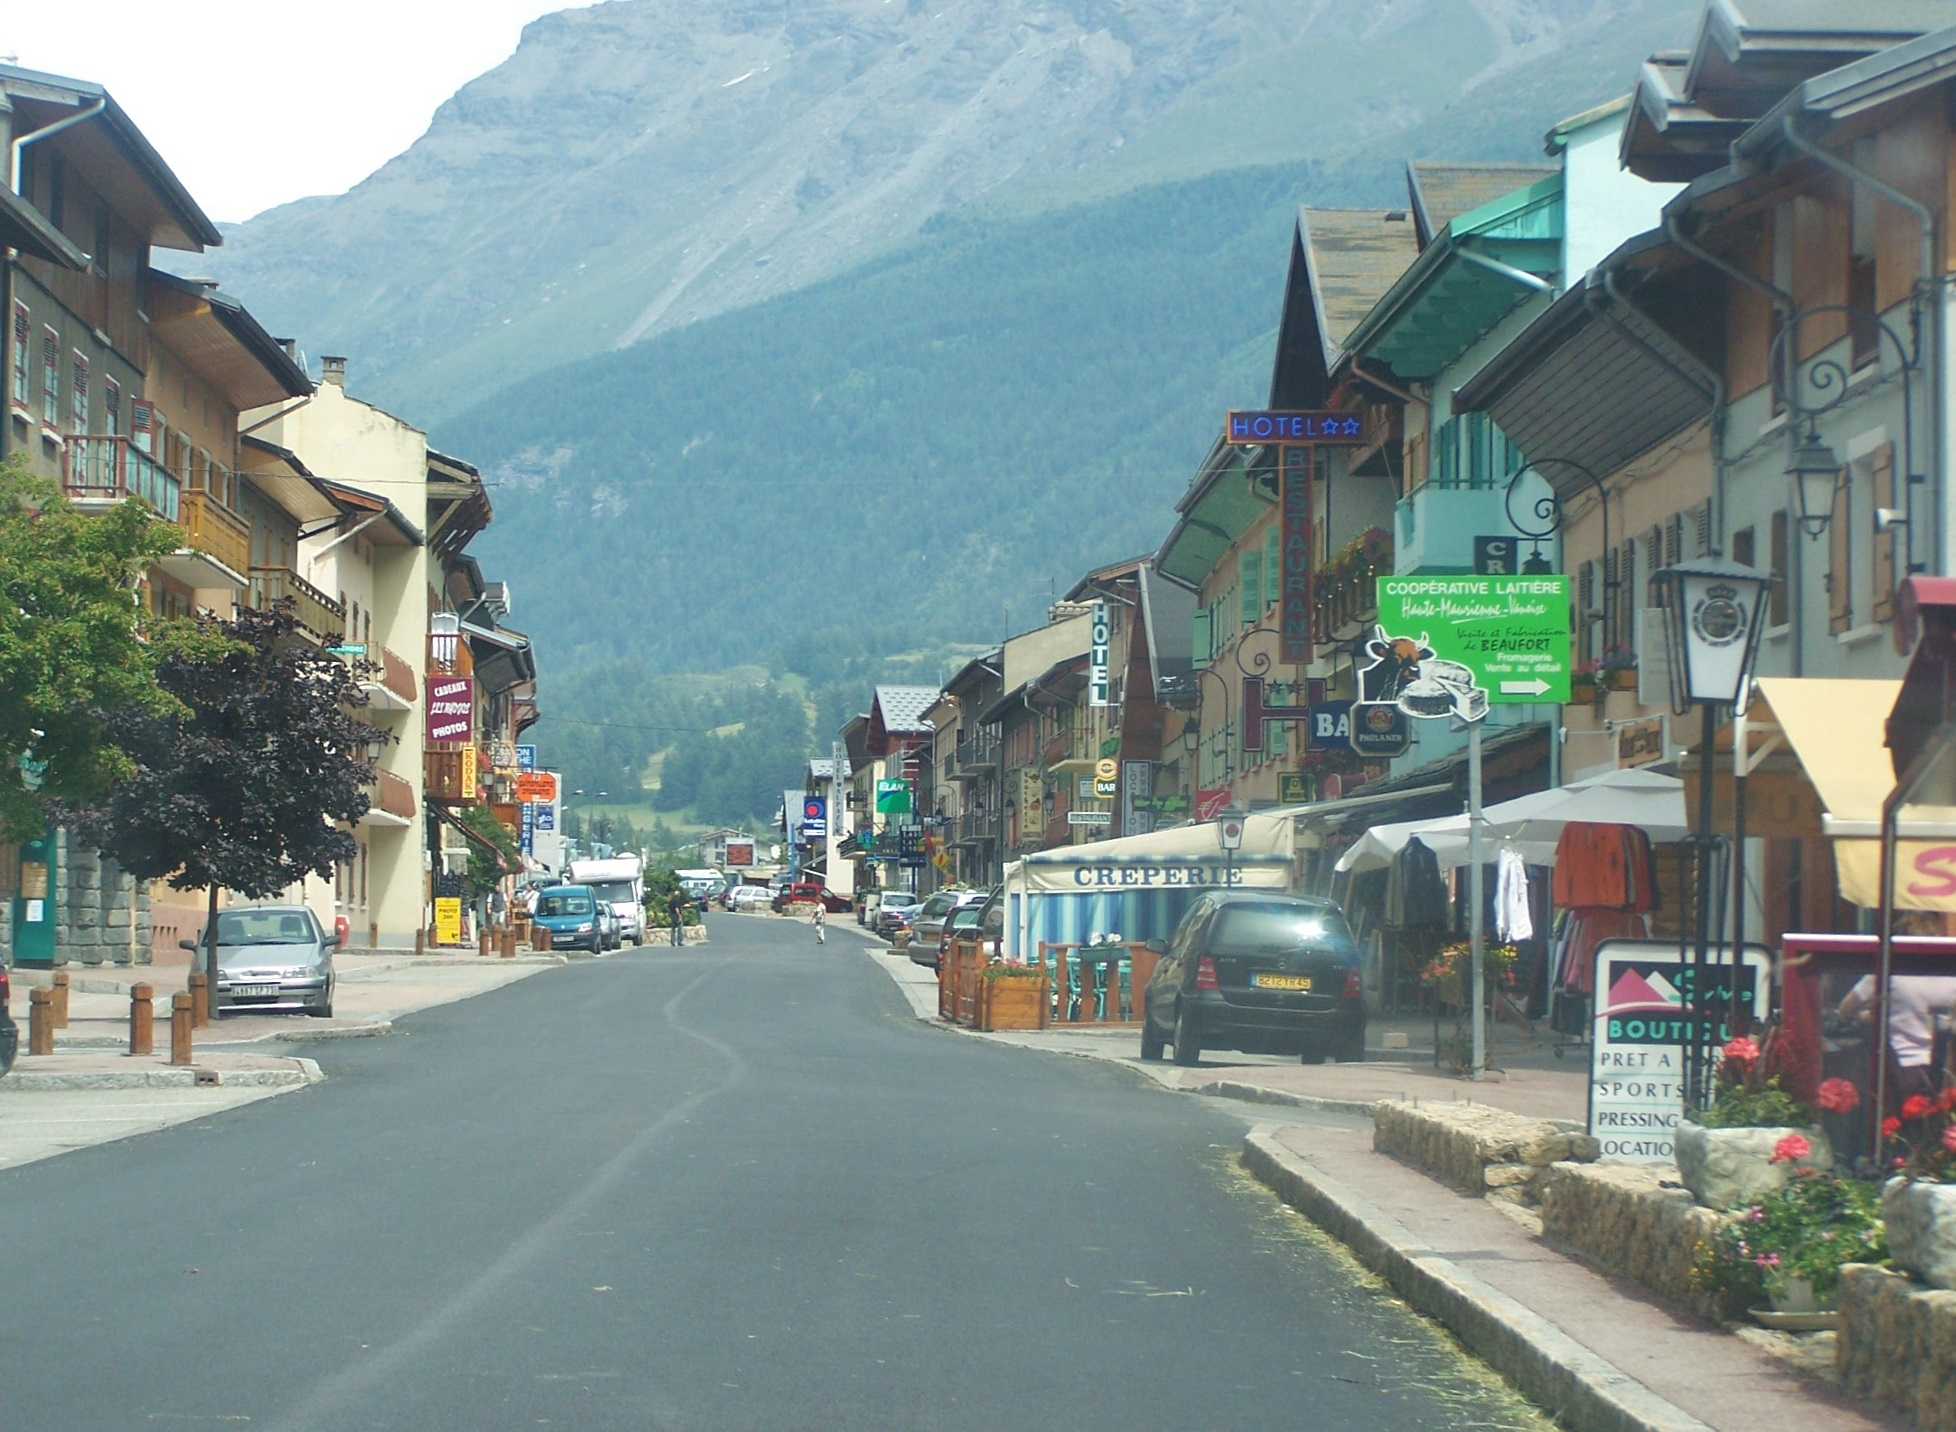 Lanslebourg France  city photos gallery : Lanslebourg Wikimedia Commons